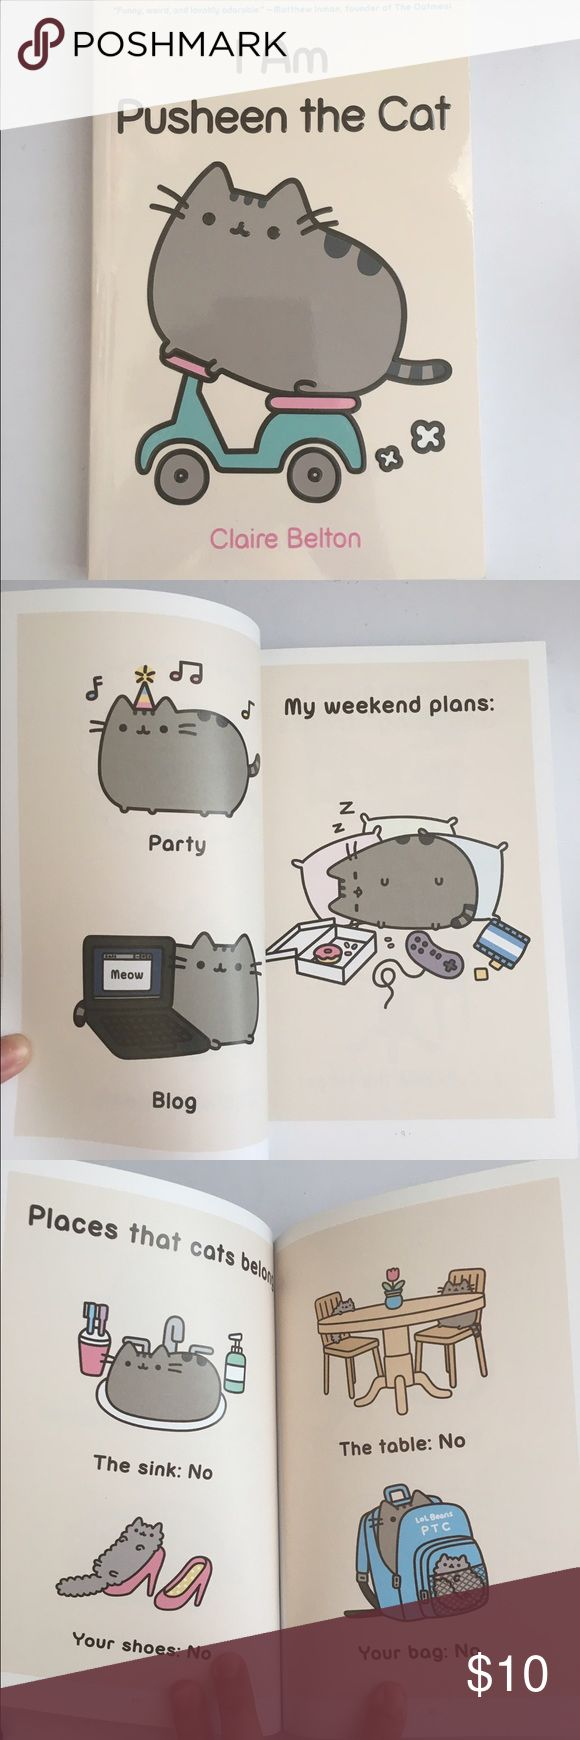 PUSHEEN BOOK BRAND NEW from urban outfitters Other